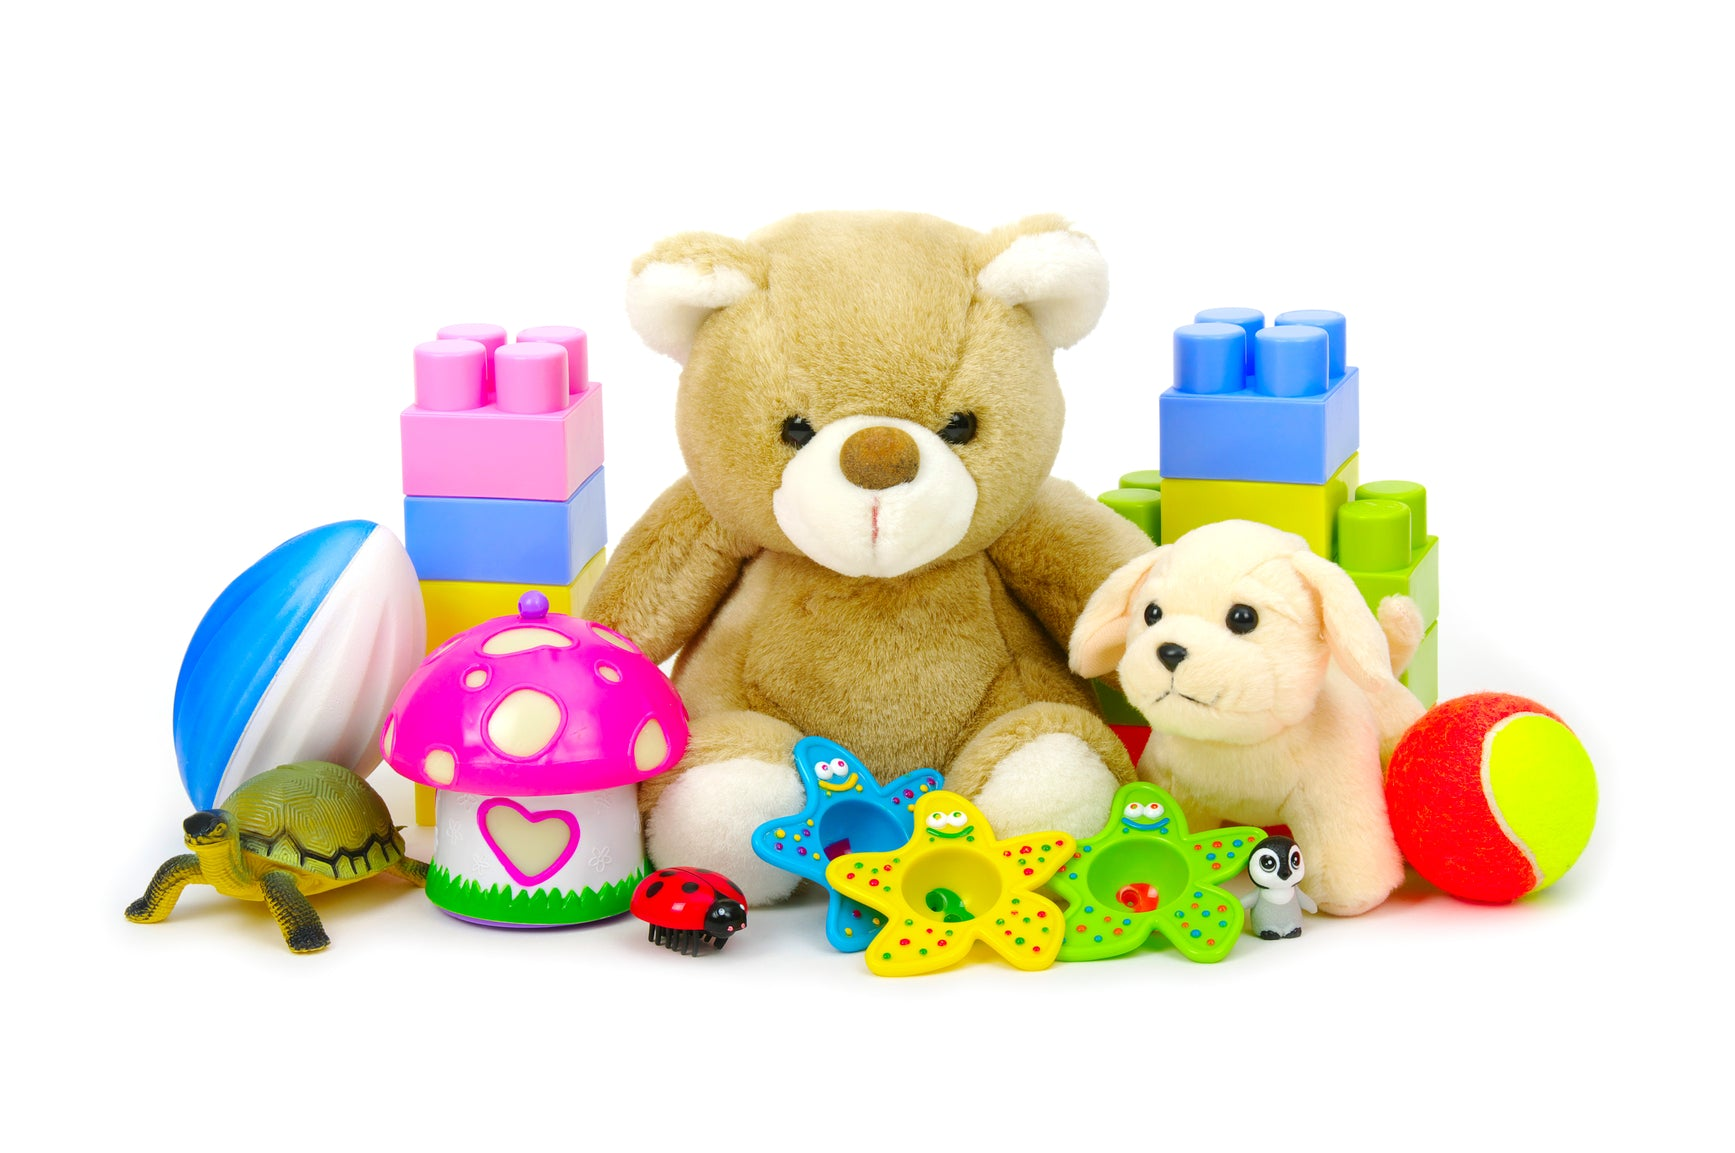 Teddy Bear, How Many Toys Does A Baby Need